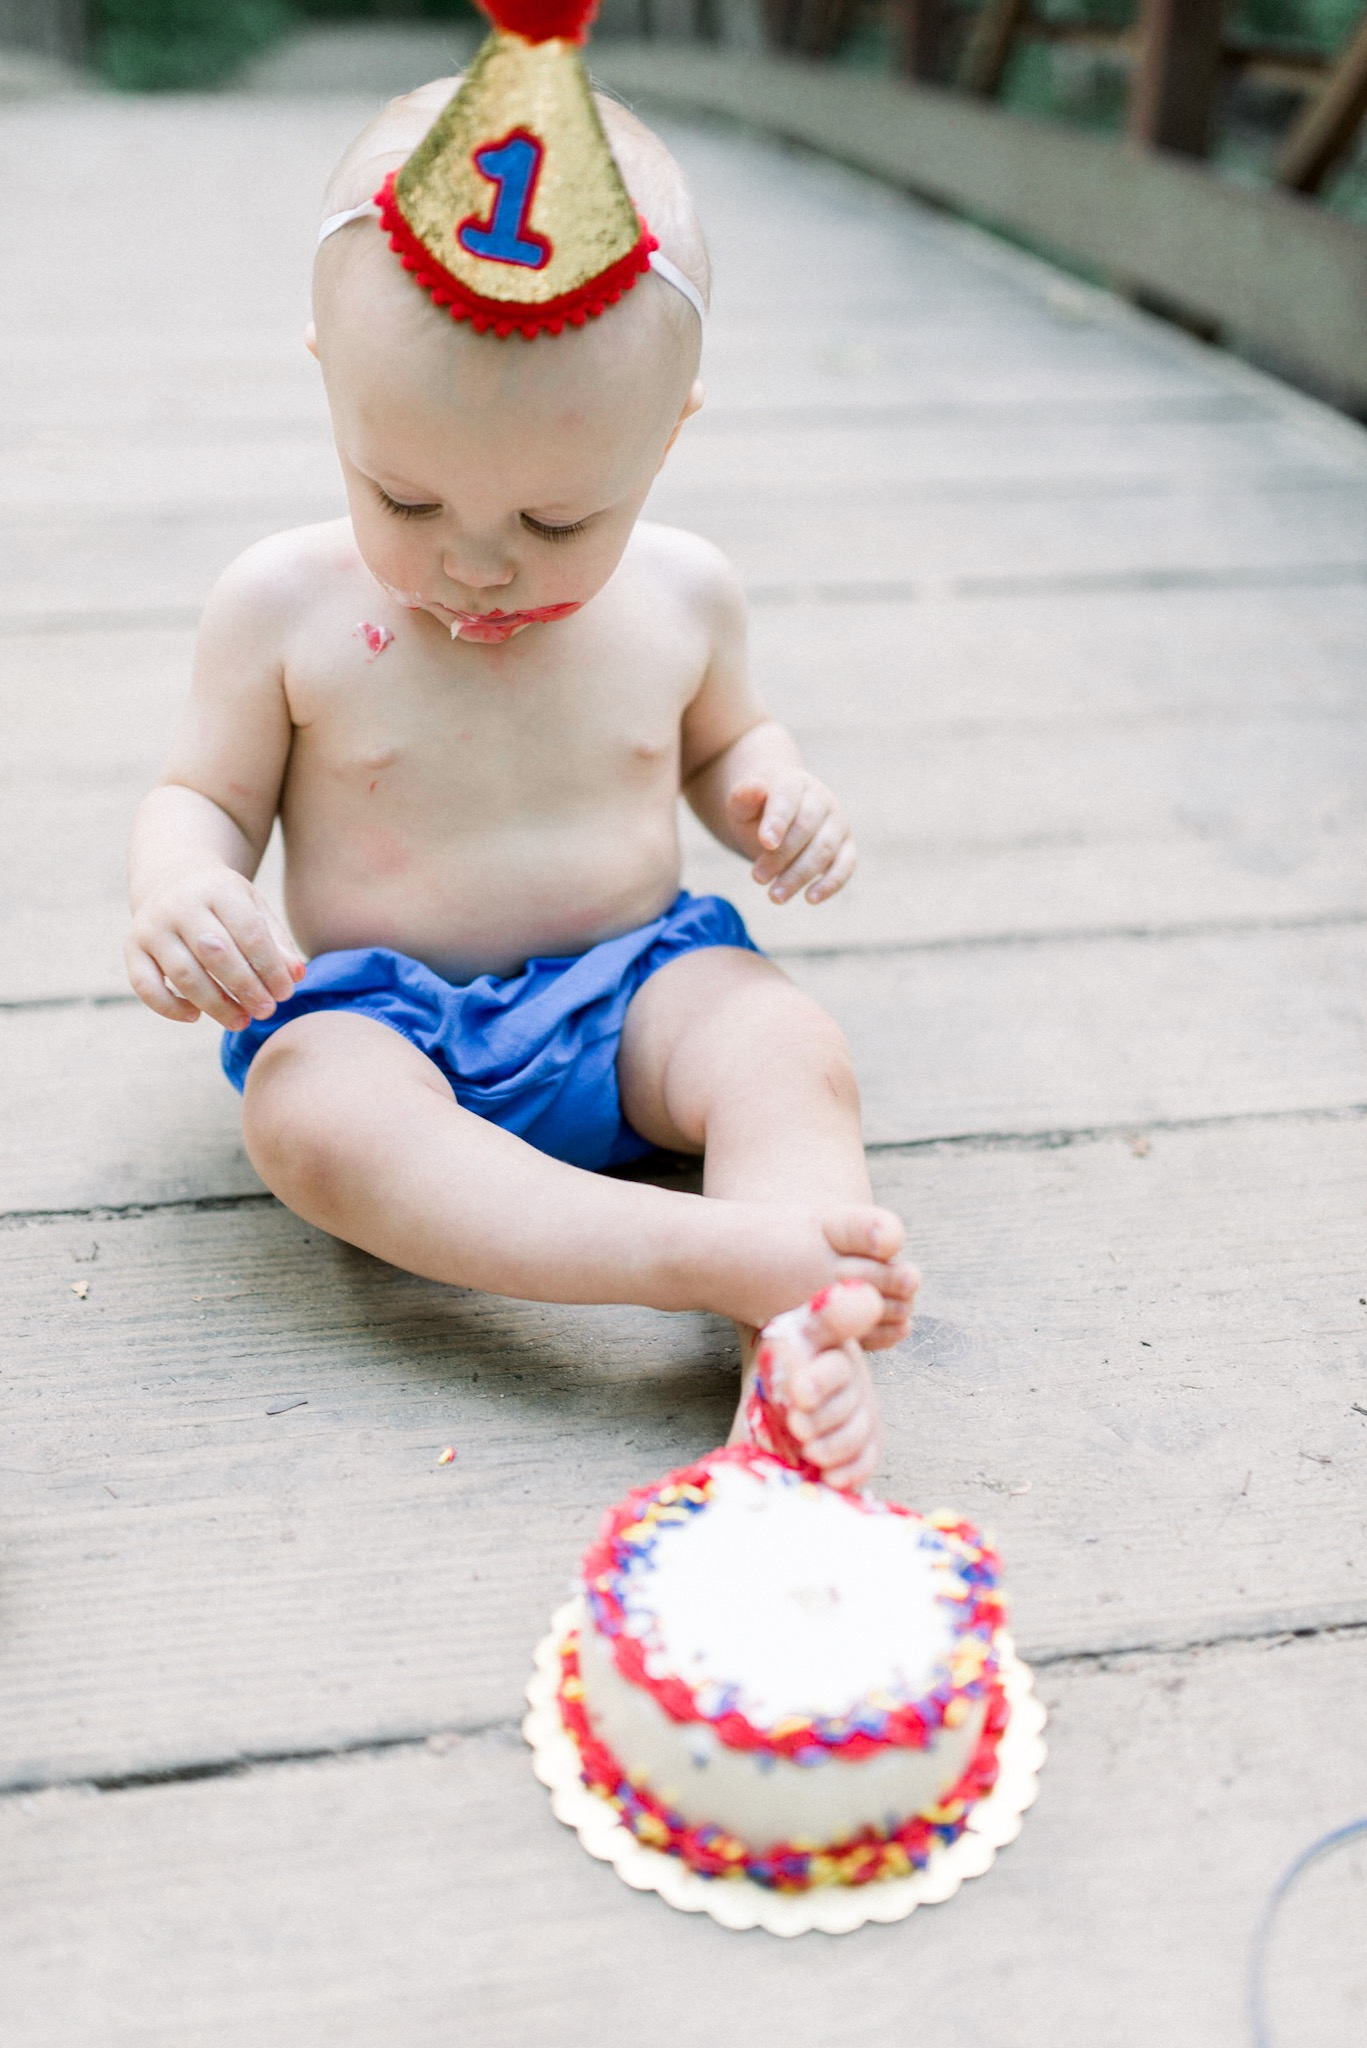 Henry & Owen | 12 Month Milestone Photography Session at the Park with a Circus Themed Cake Smash | Carmel, IN Family Photographers